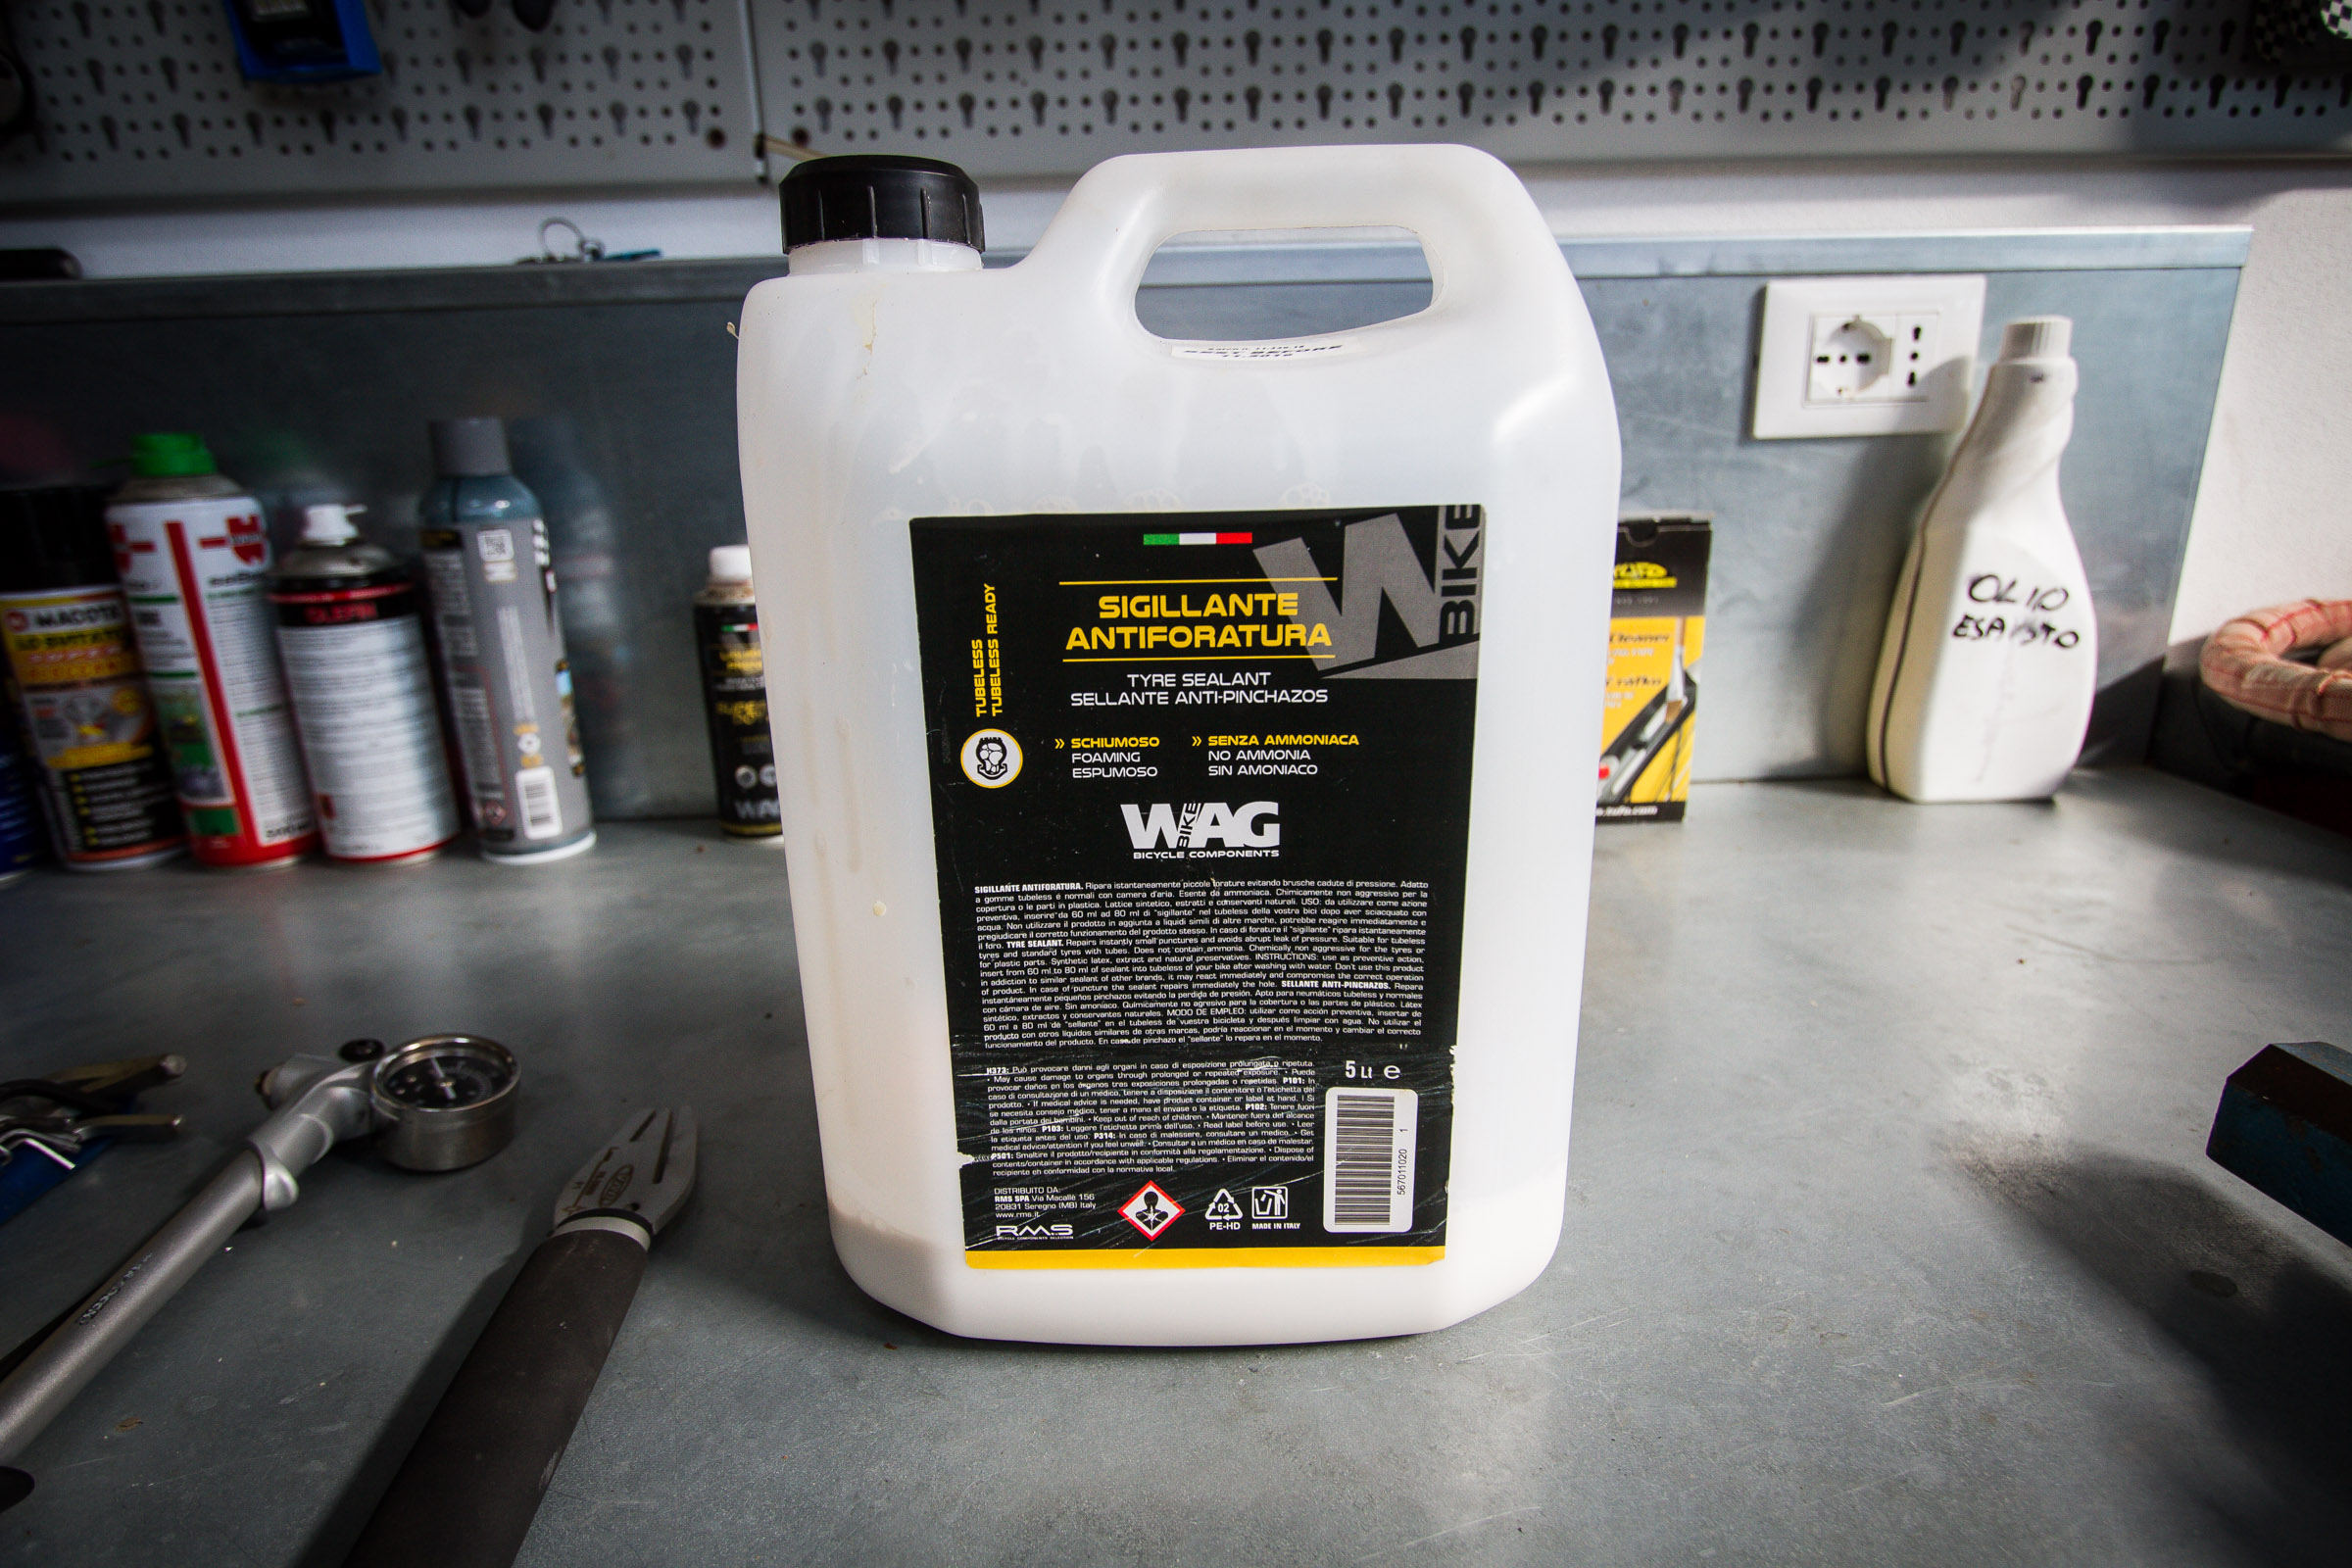 Tyre sealant and lots of it is a very valuable item to own. At about 80 euros for a big pot, it gives you ability to do keep all your tyres running properly and switch out without worrying about transferring liquid into the new tyre.